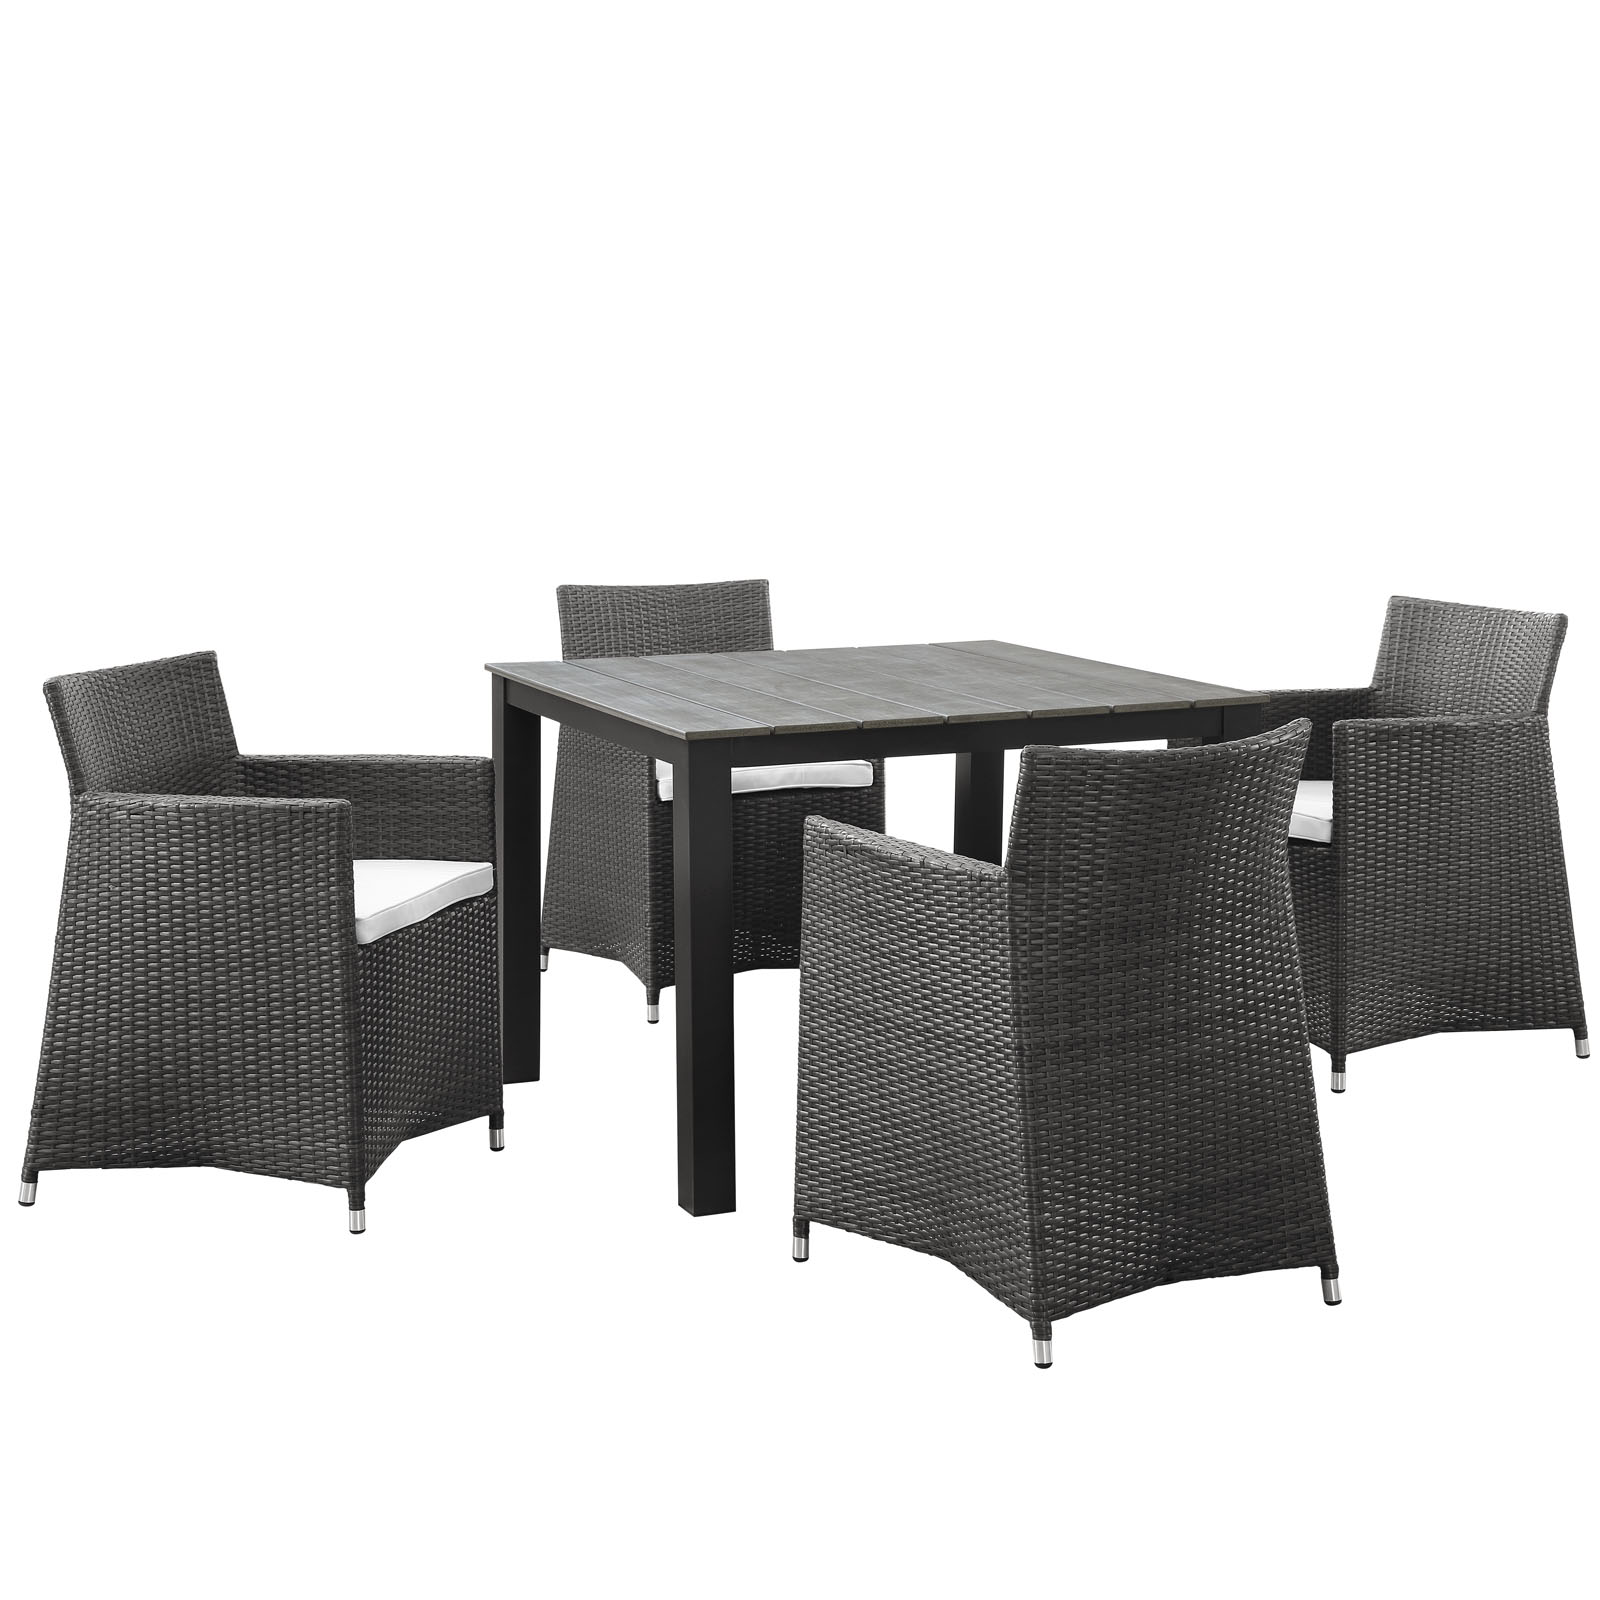 Modern Contemporary Five PCS Outdoor Patio Dining Set, White, Polywood, Aluminum